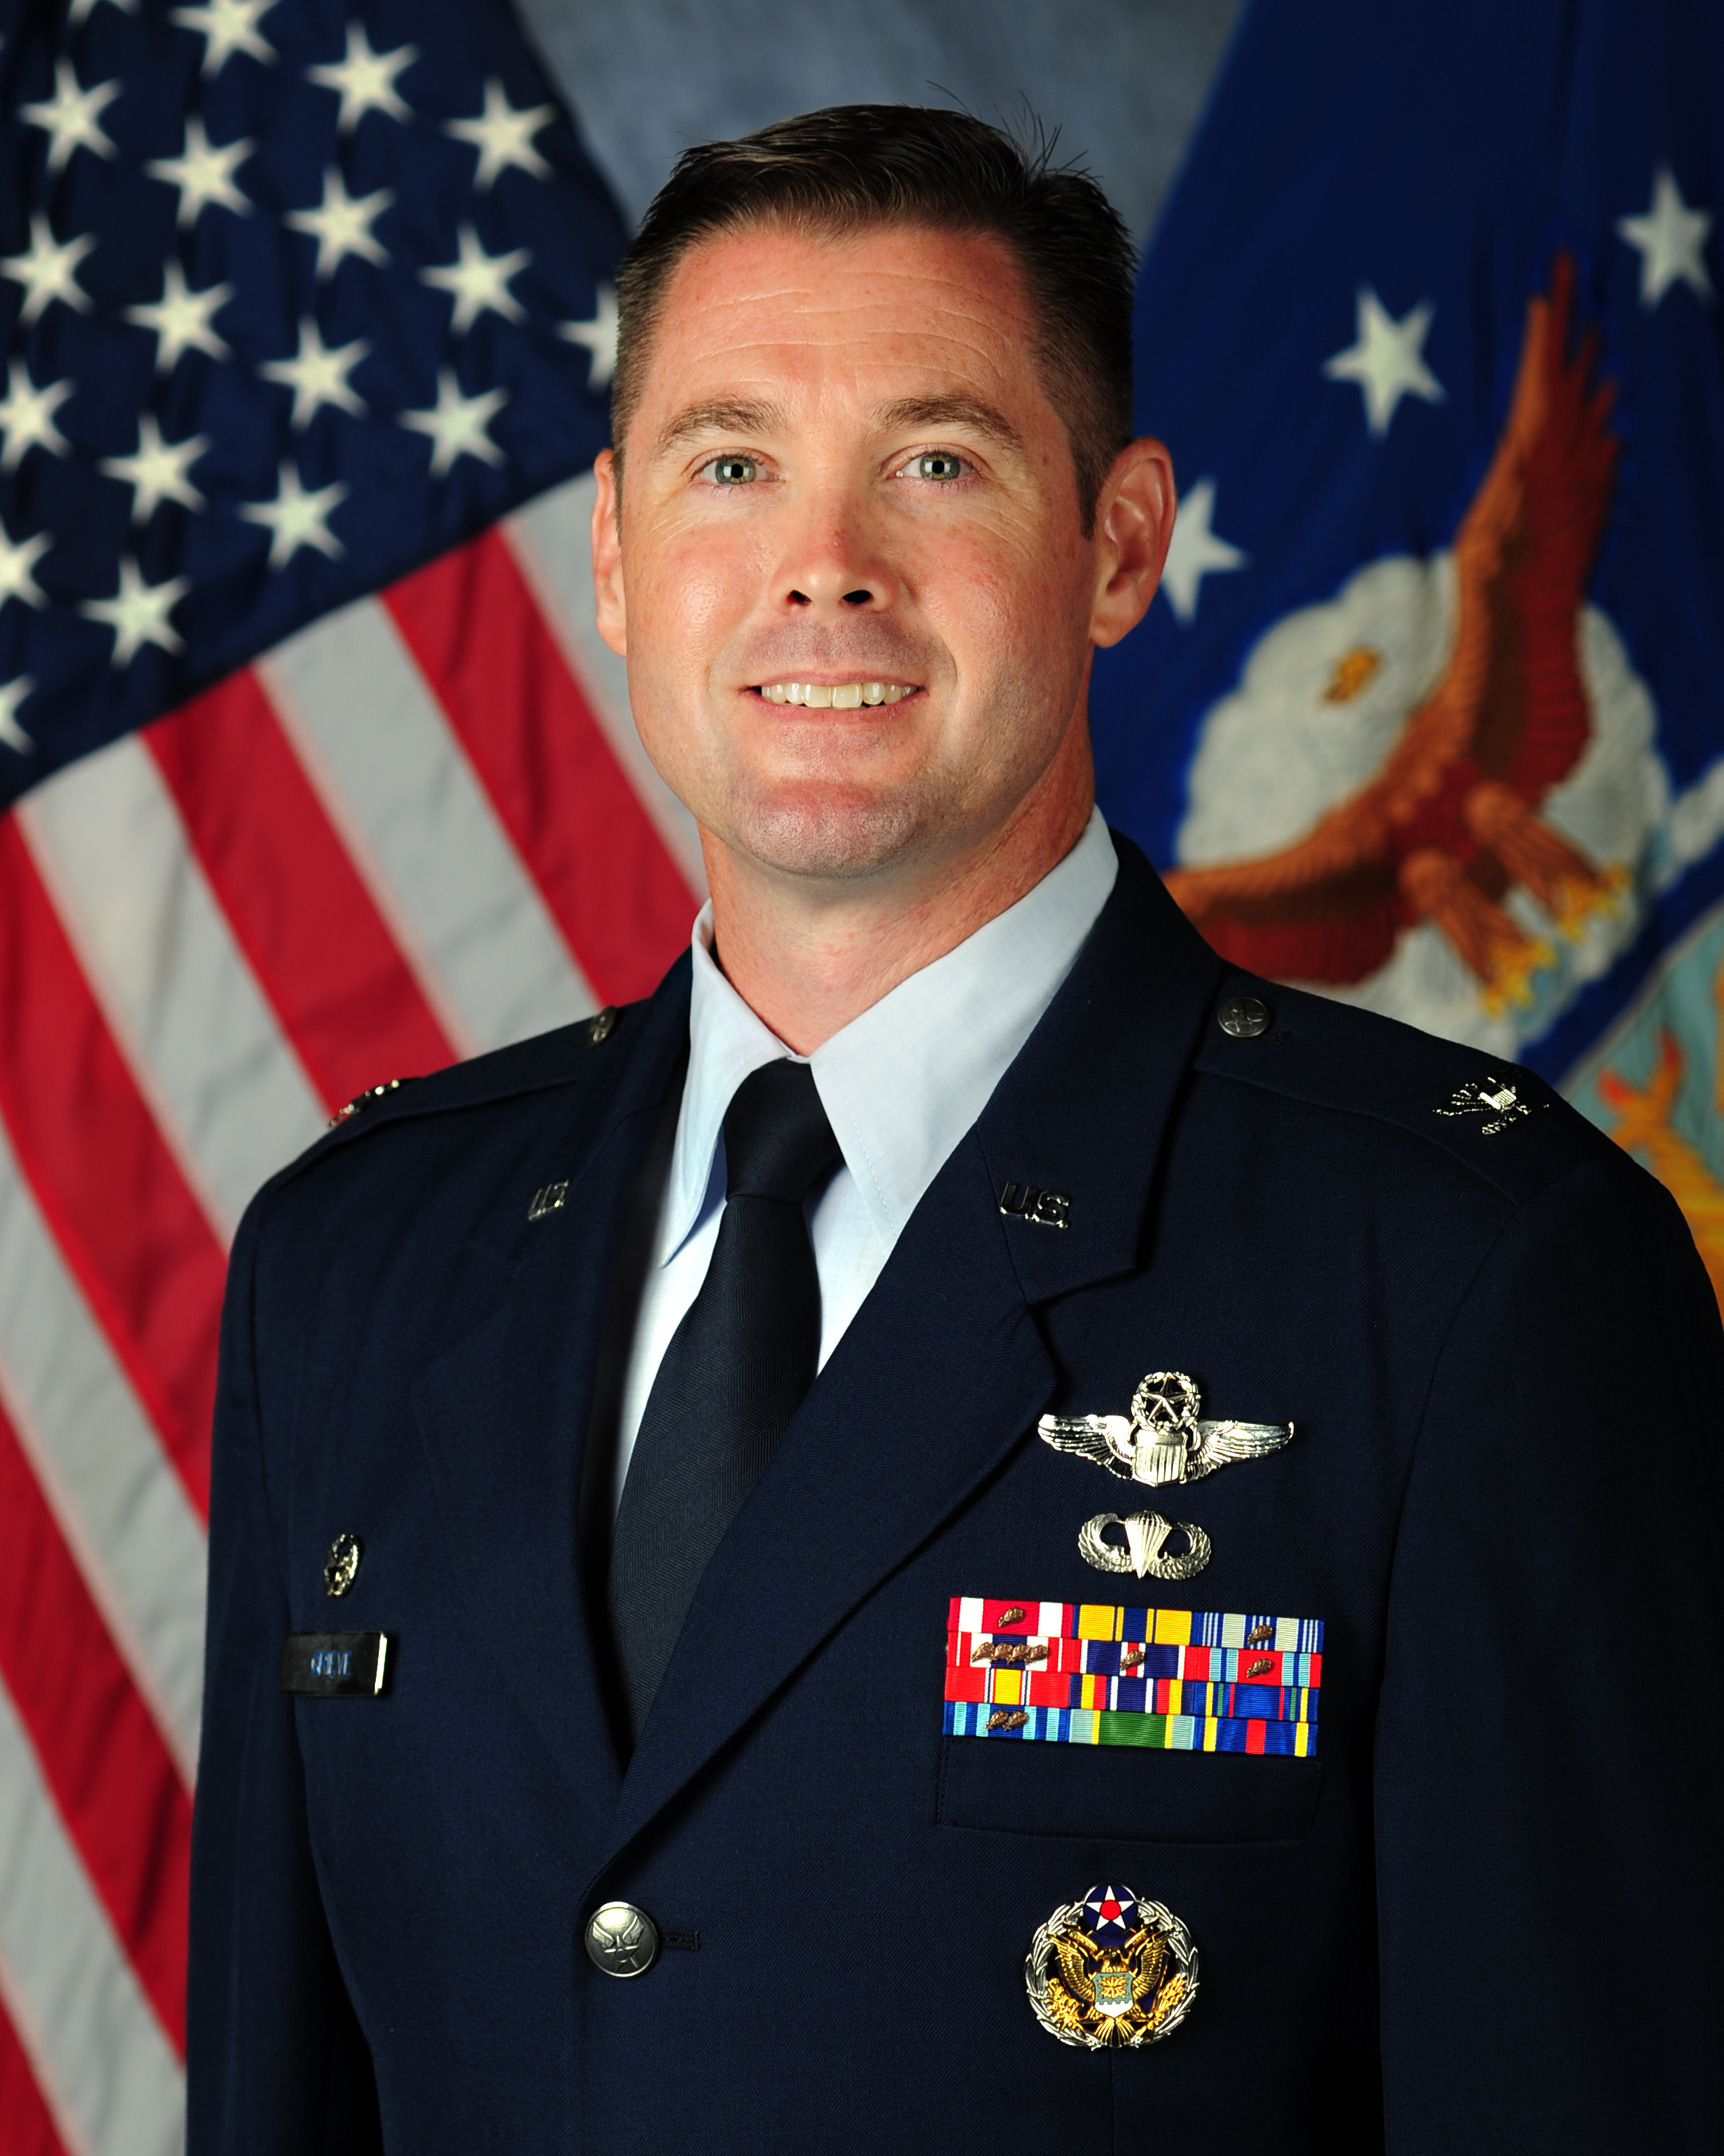 Col Grieve 509 Operations Group Commander